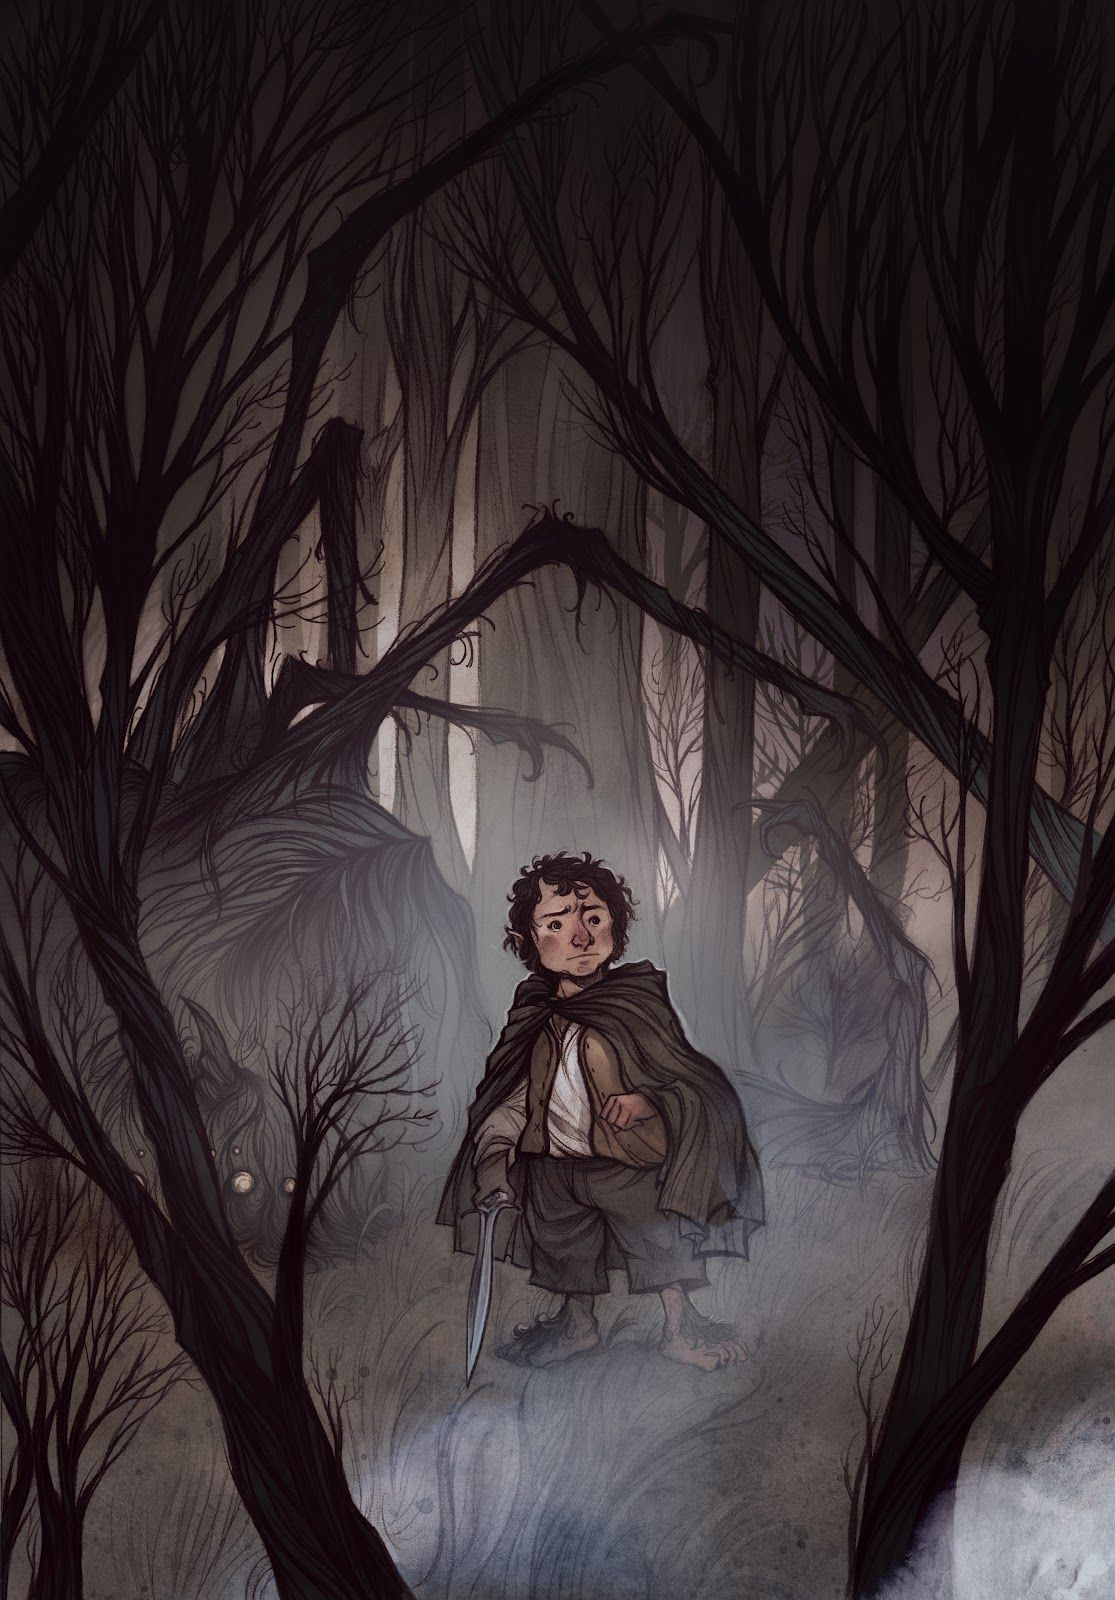 The hobbit by cory godbey lord of the rings - Dessin seigneur des anneaux ...